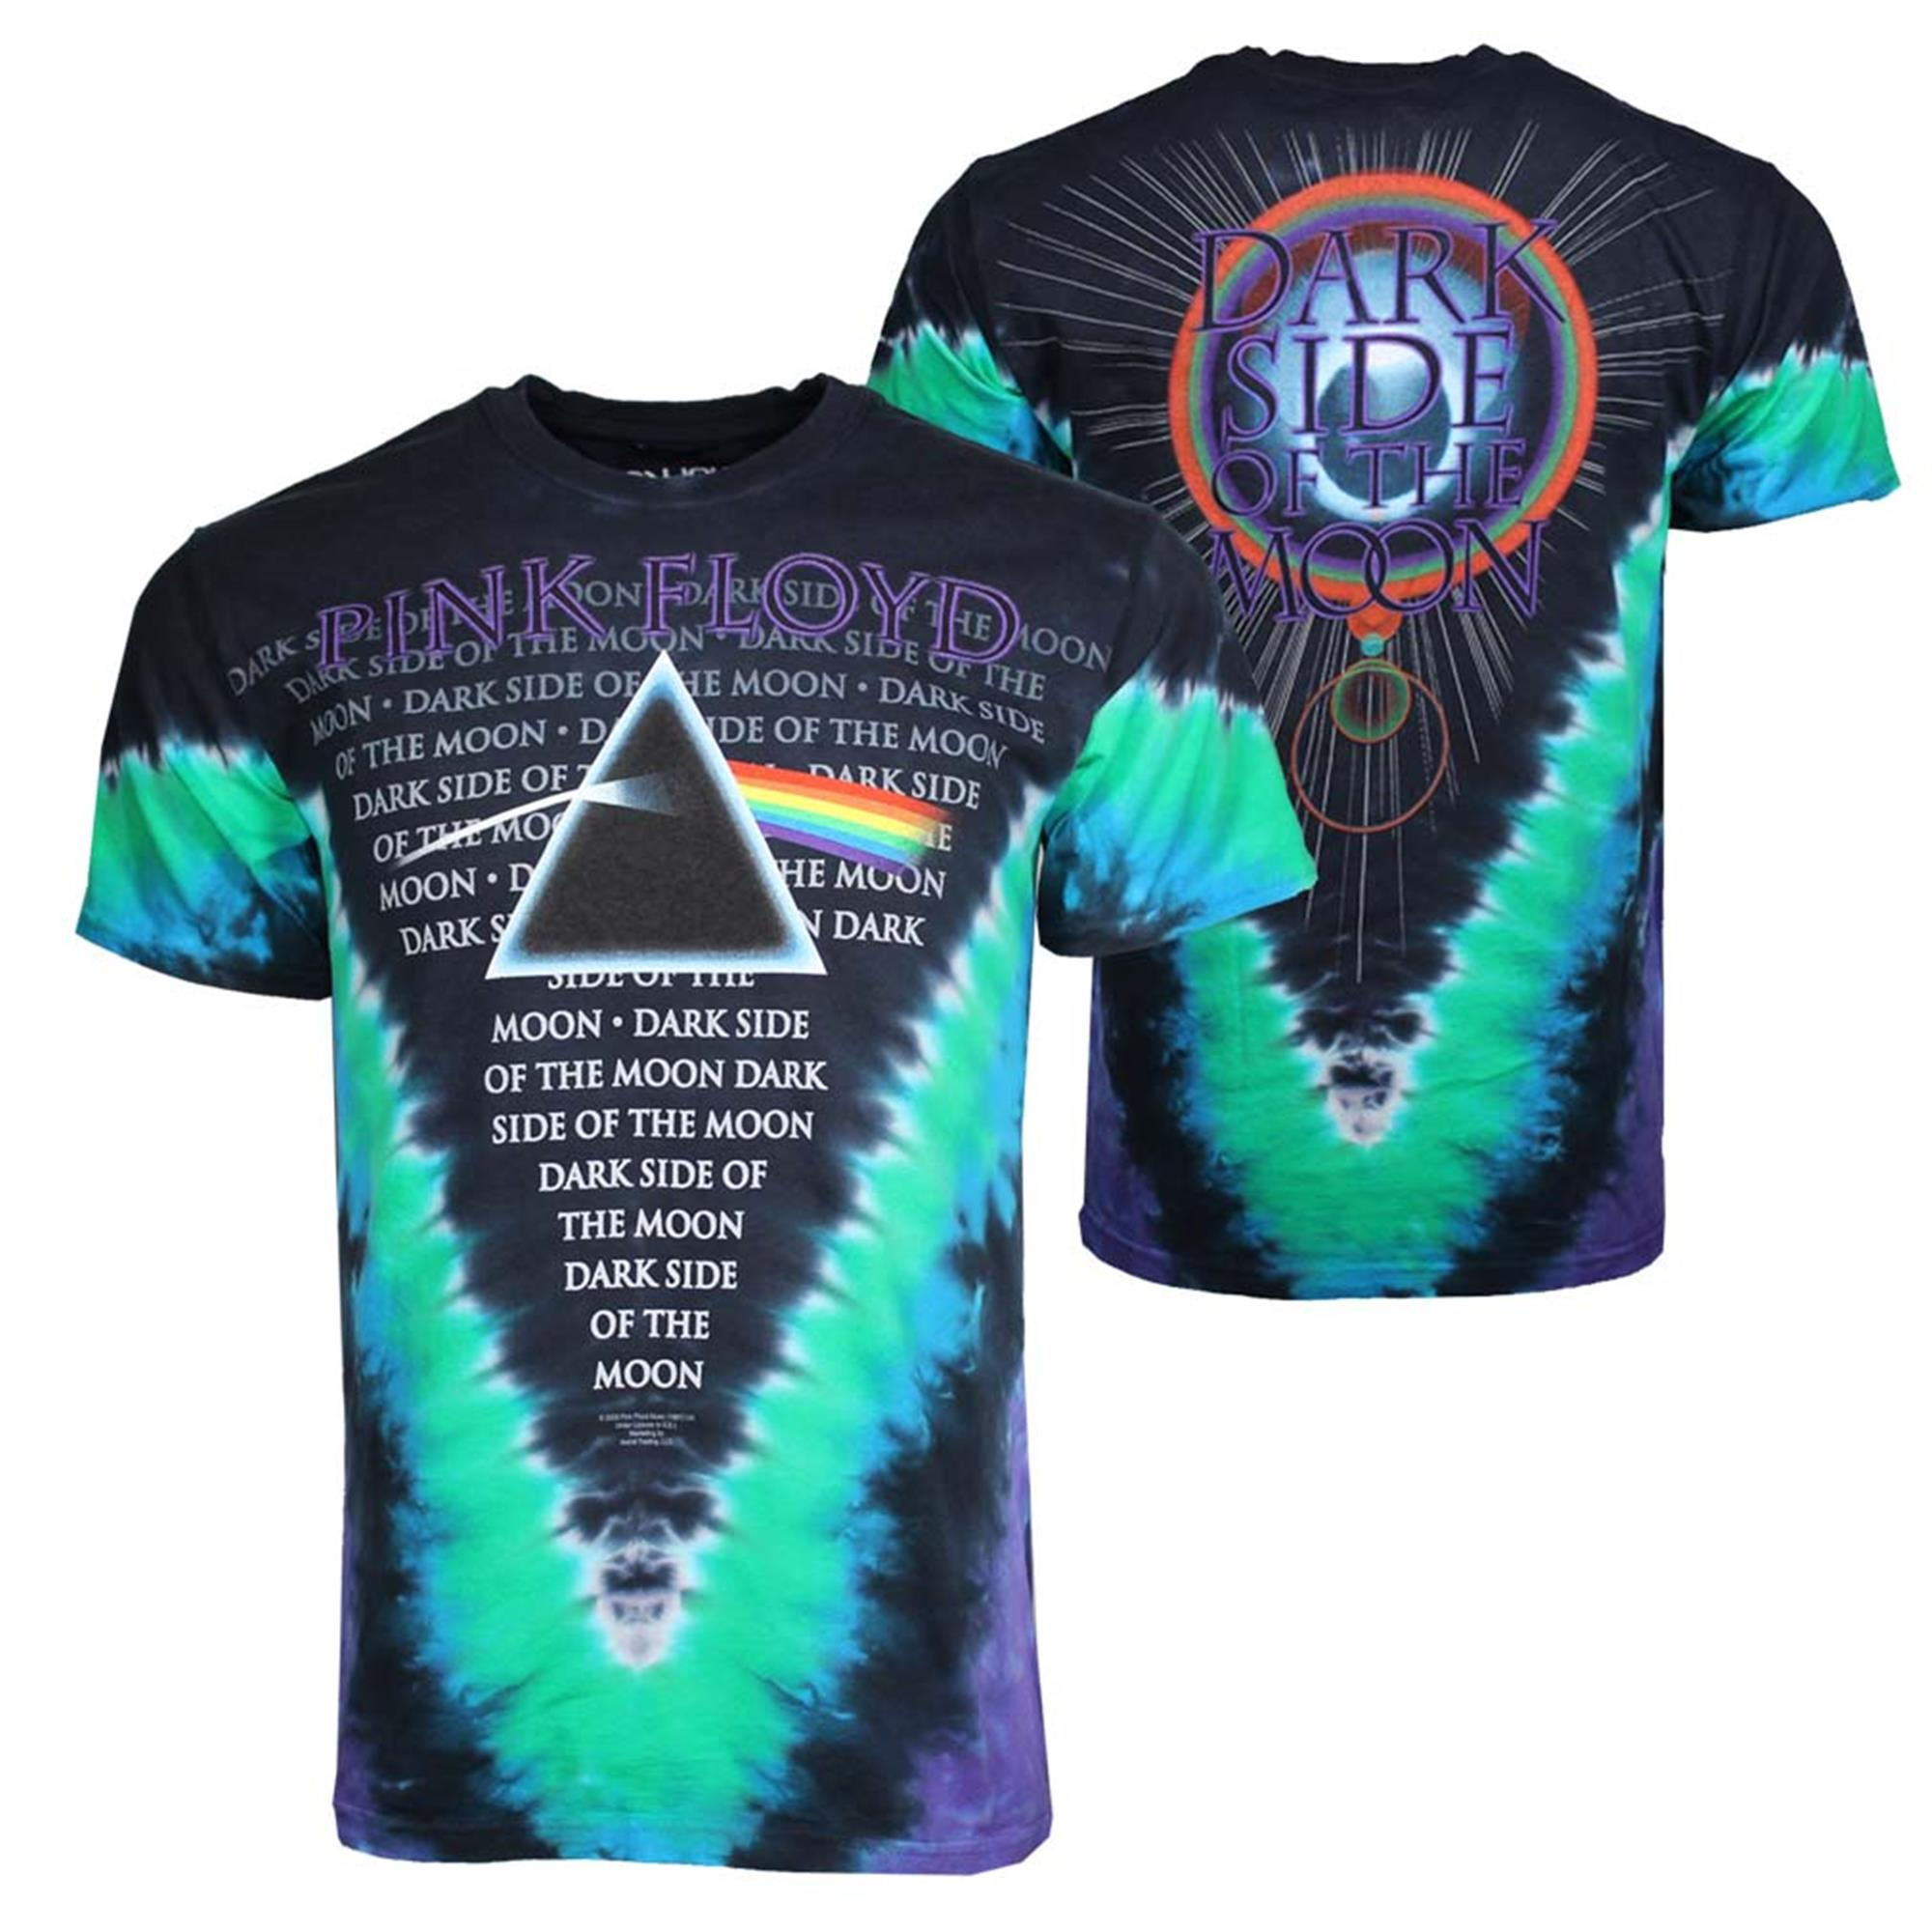 Pink Floyd Dark Side of the Moon Prism Rock Official Tee T-Shirt Mens